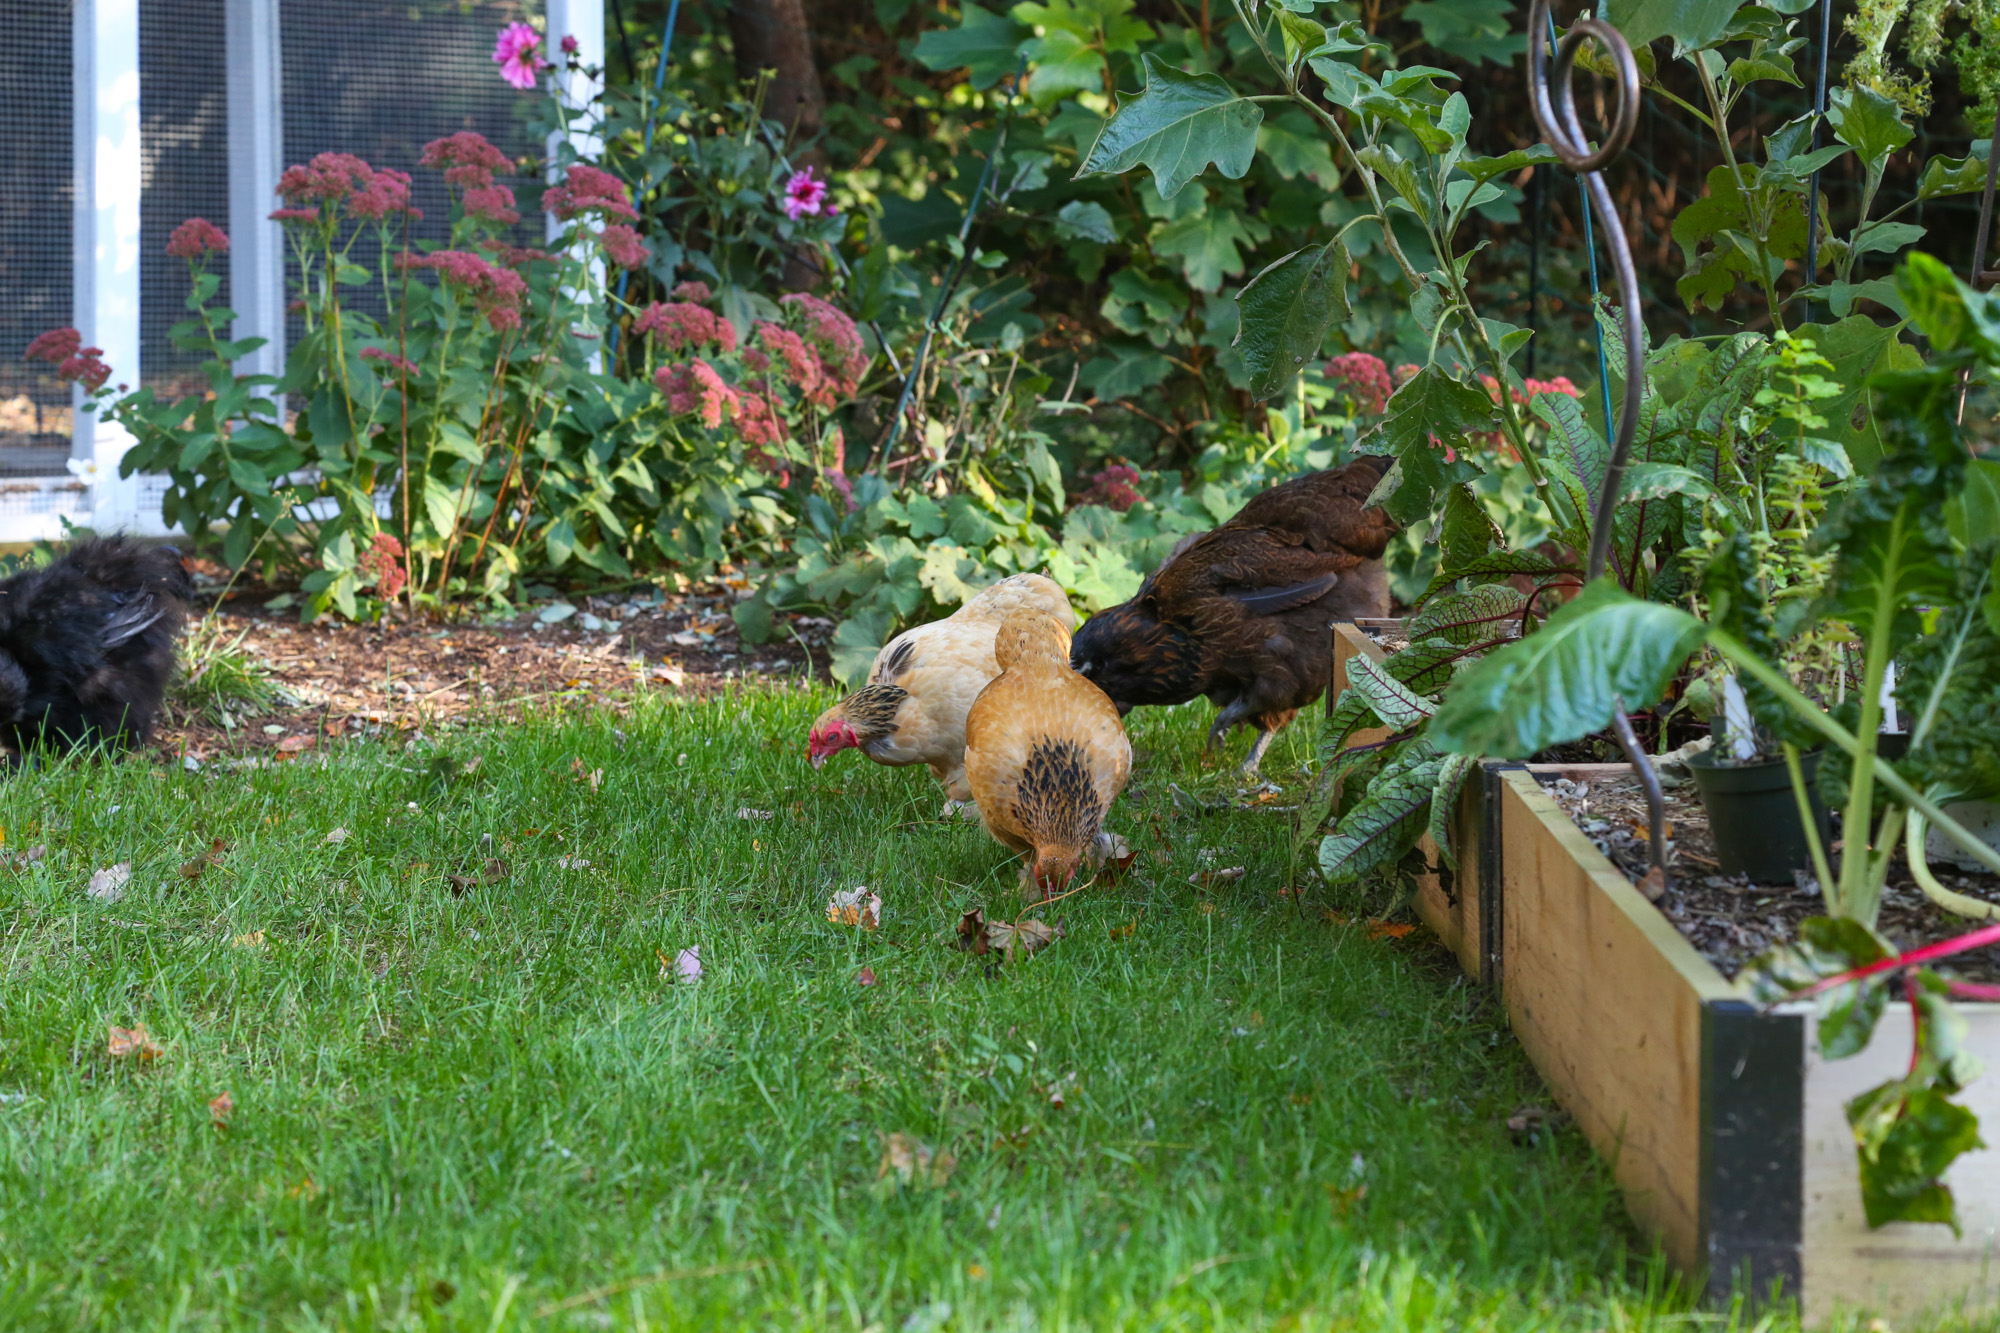 free ranging chickens in the garden